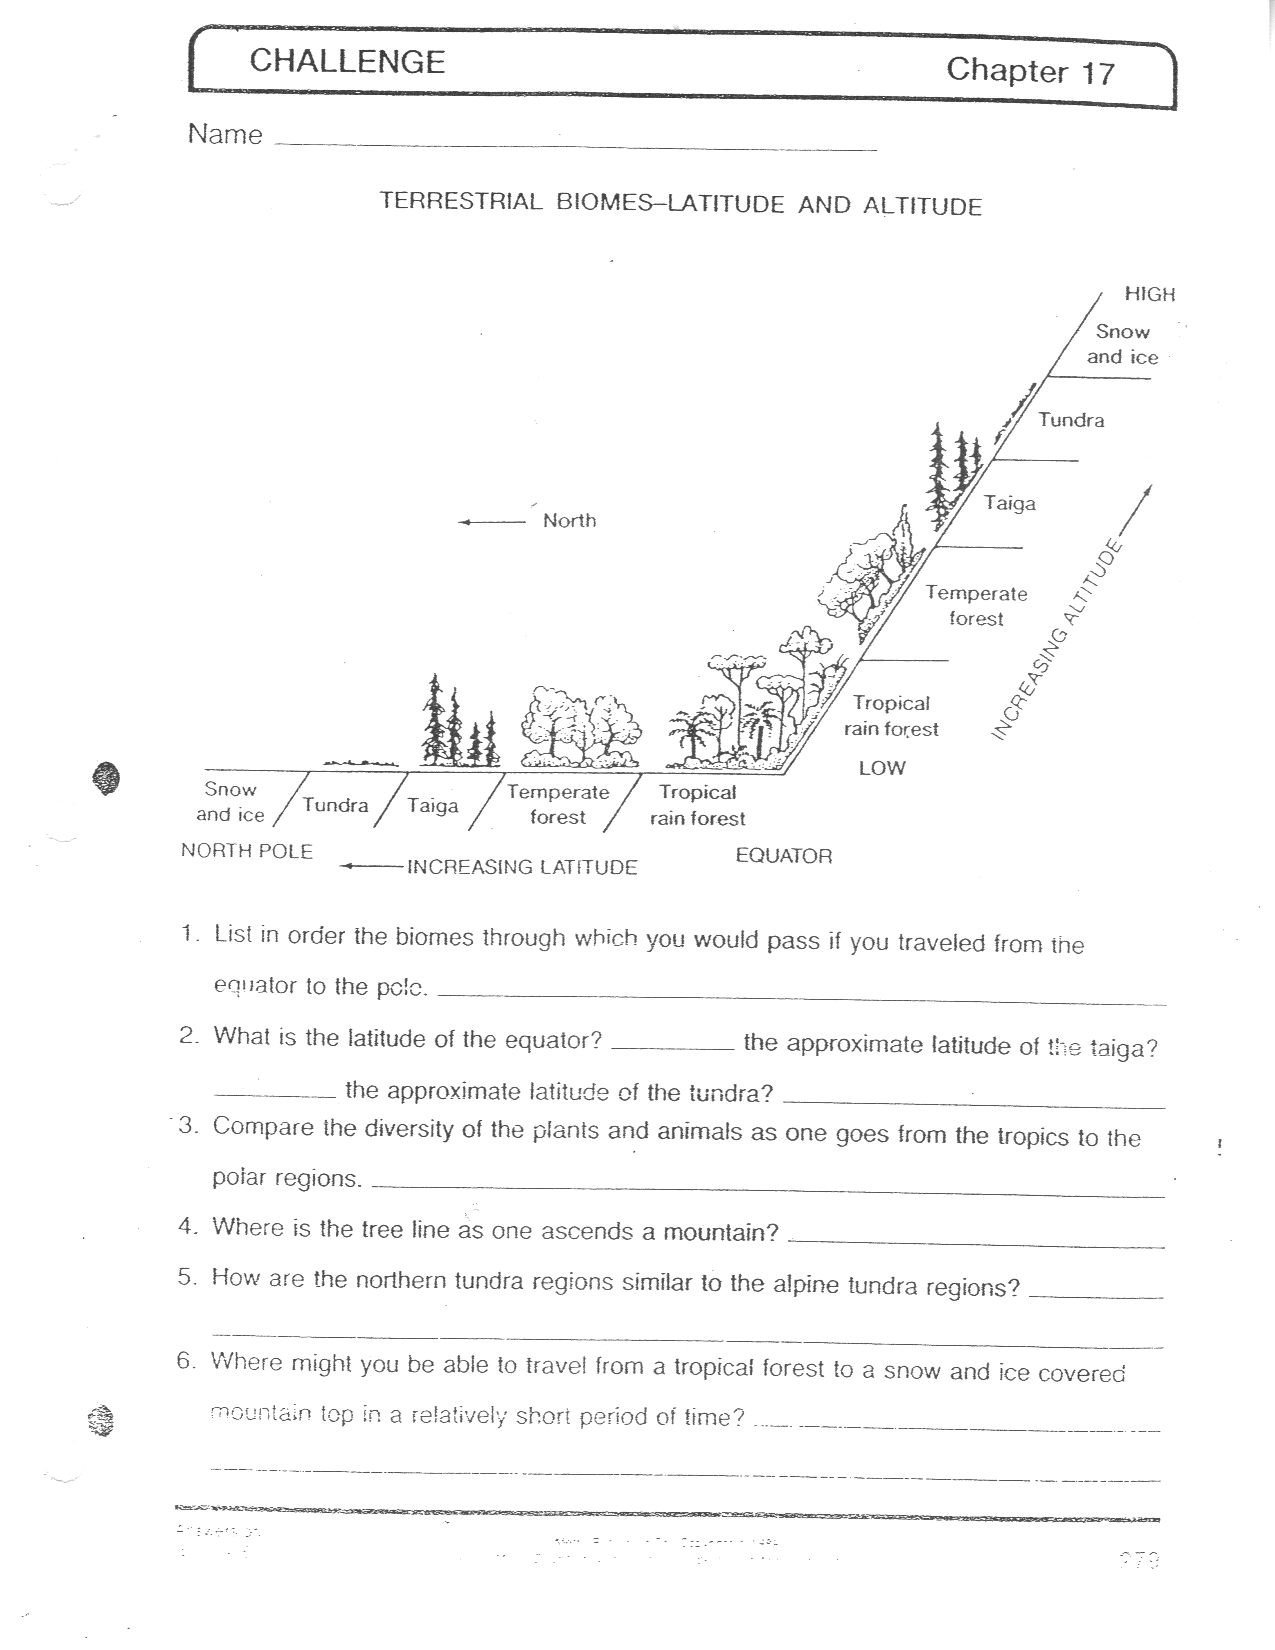 Free Printable Ecosystem Worksheets Biomes at A Glance Worksheet Answers